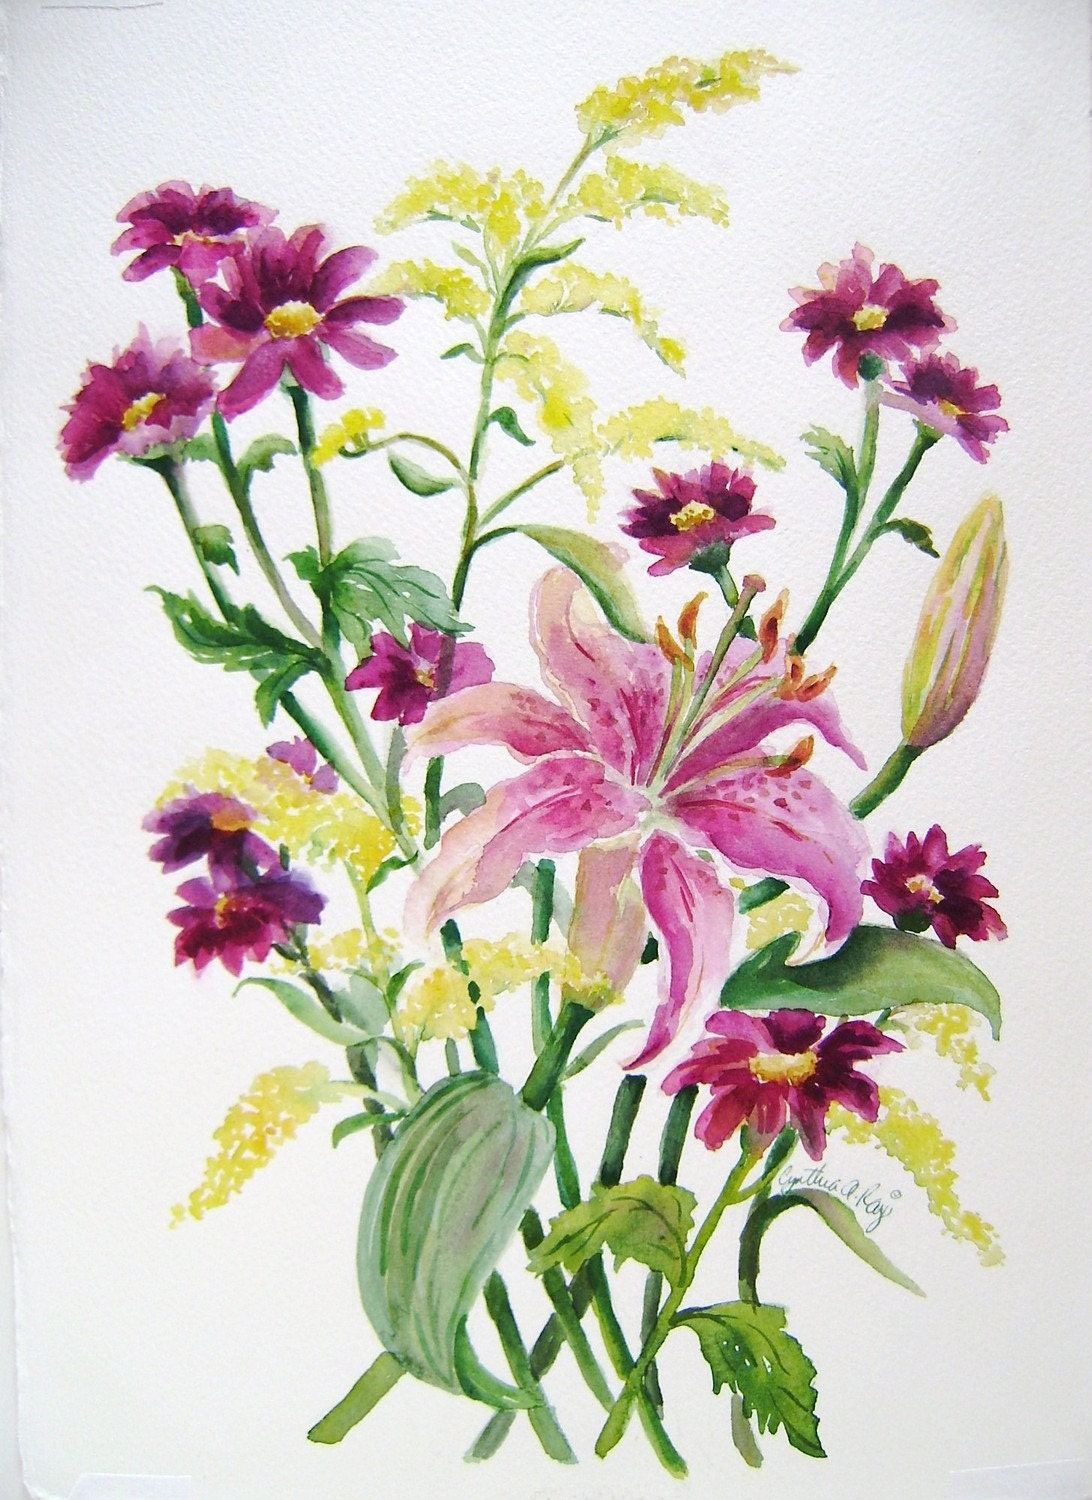 Rubrum Lily Flower Bouquet Original Watercolor Painting